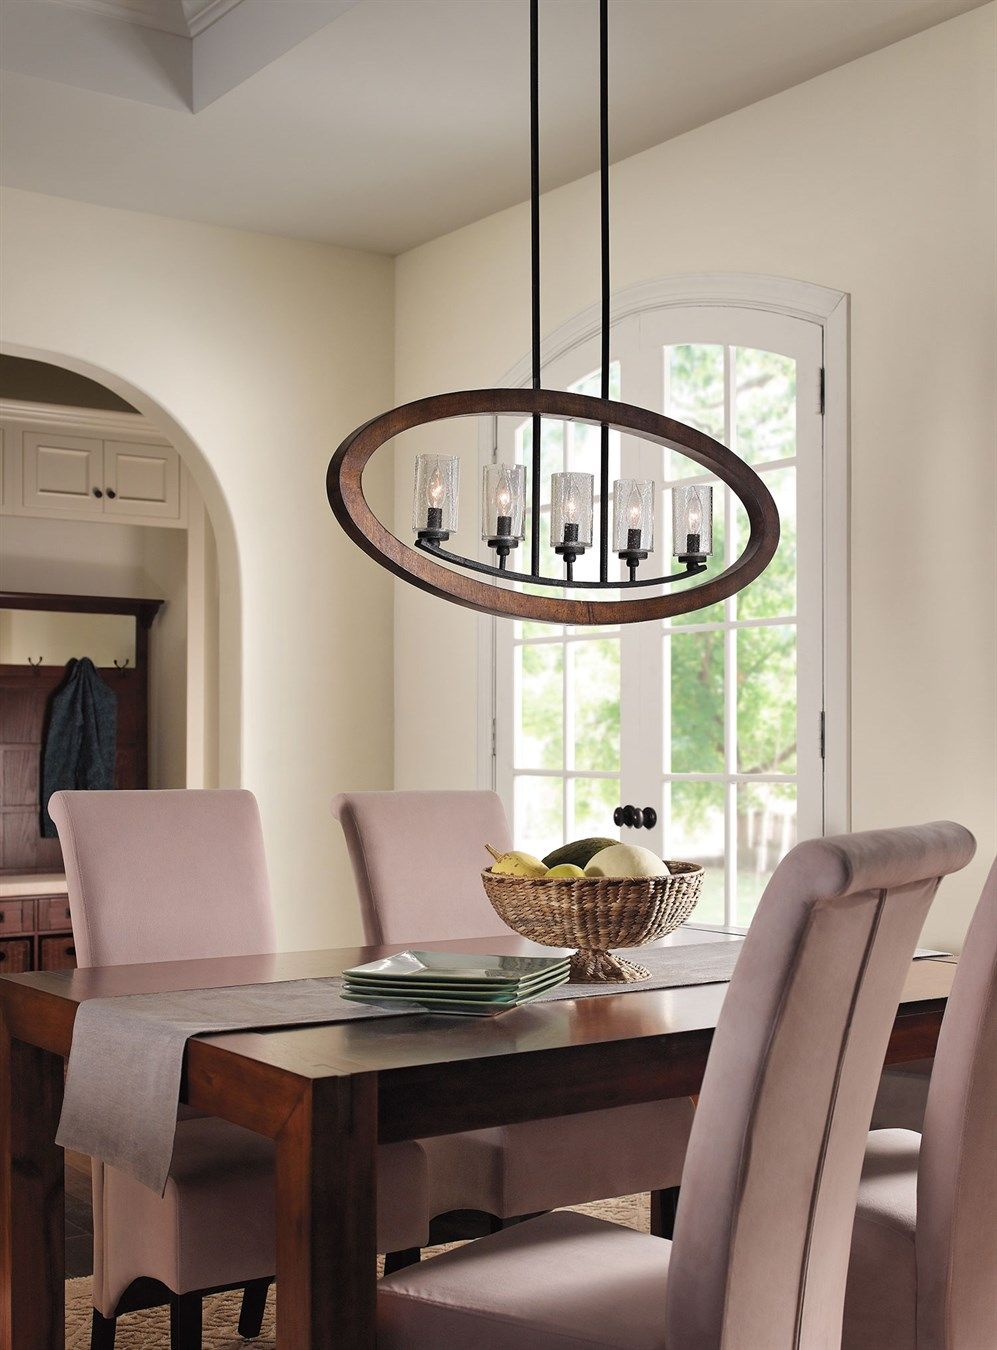 Merveilleux Dining Room Lighting. Grand Bank 5 Light Linear Chandelier. Kichler.